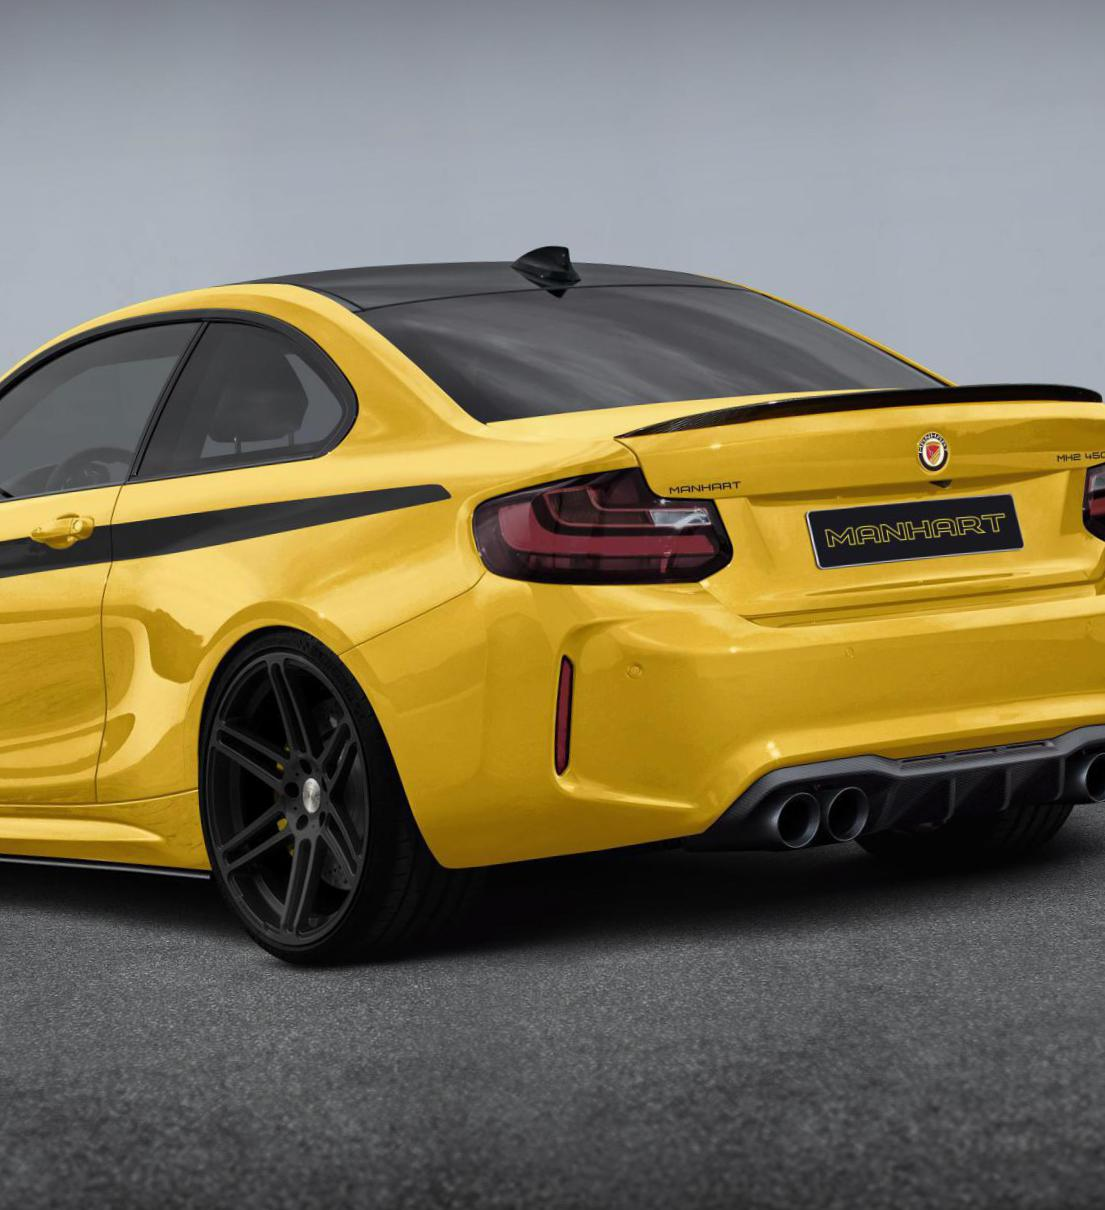 M2 Coupe (F87) BMW used 2014